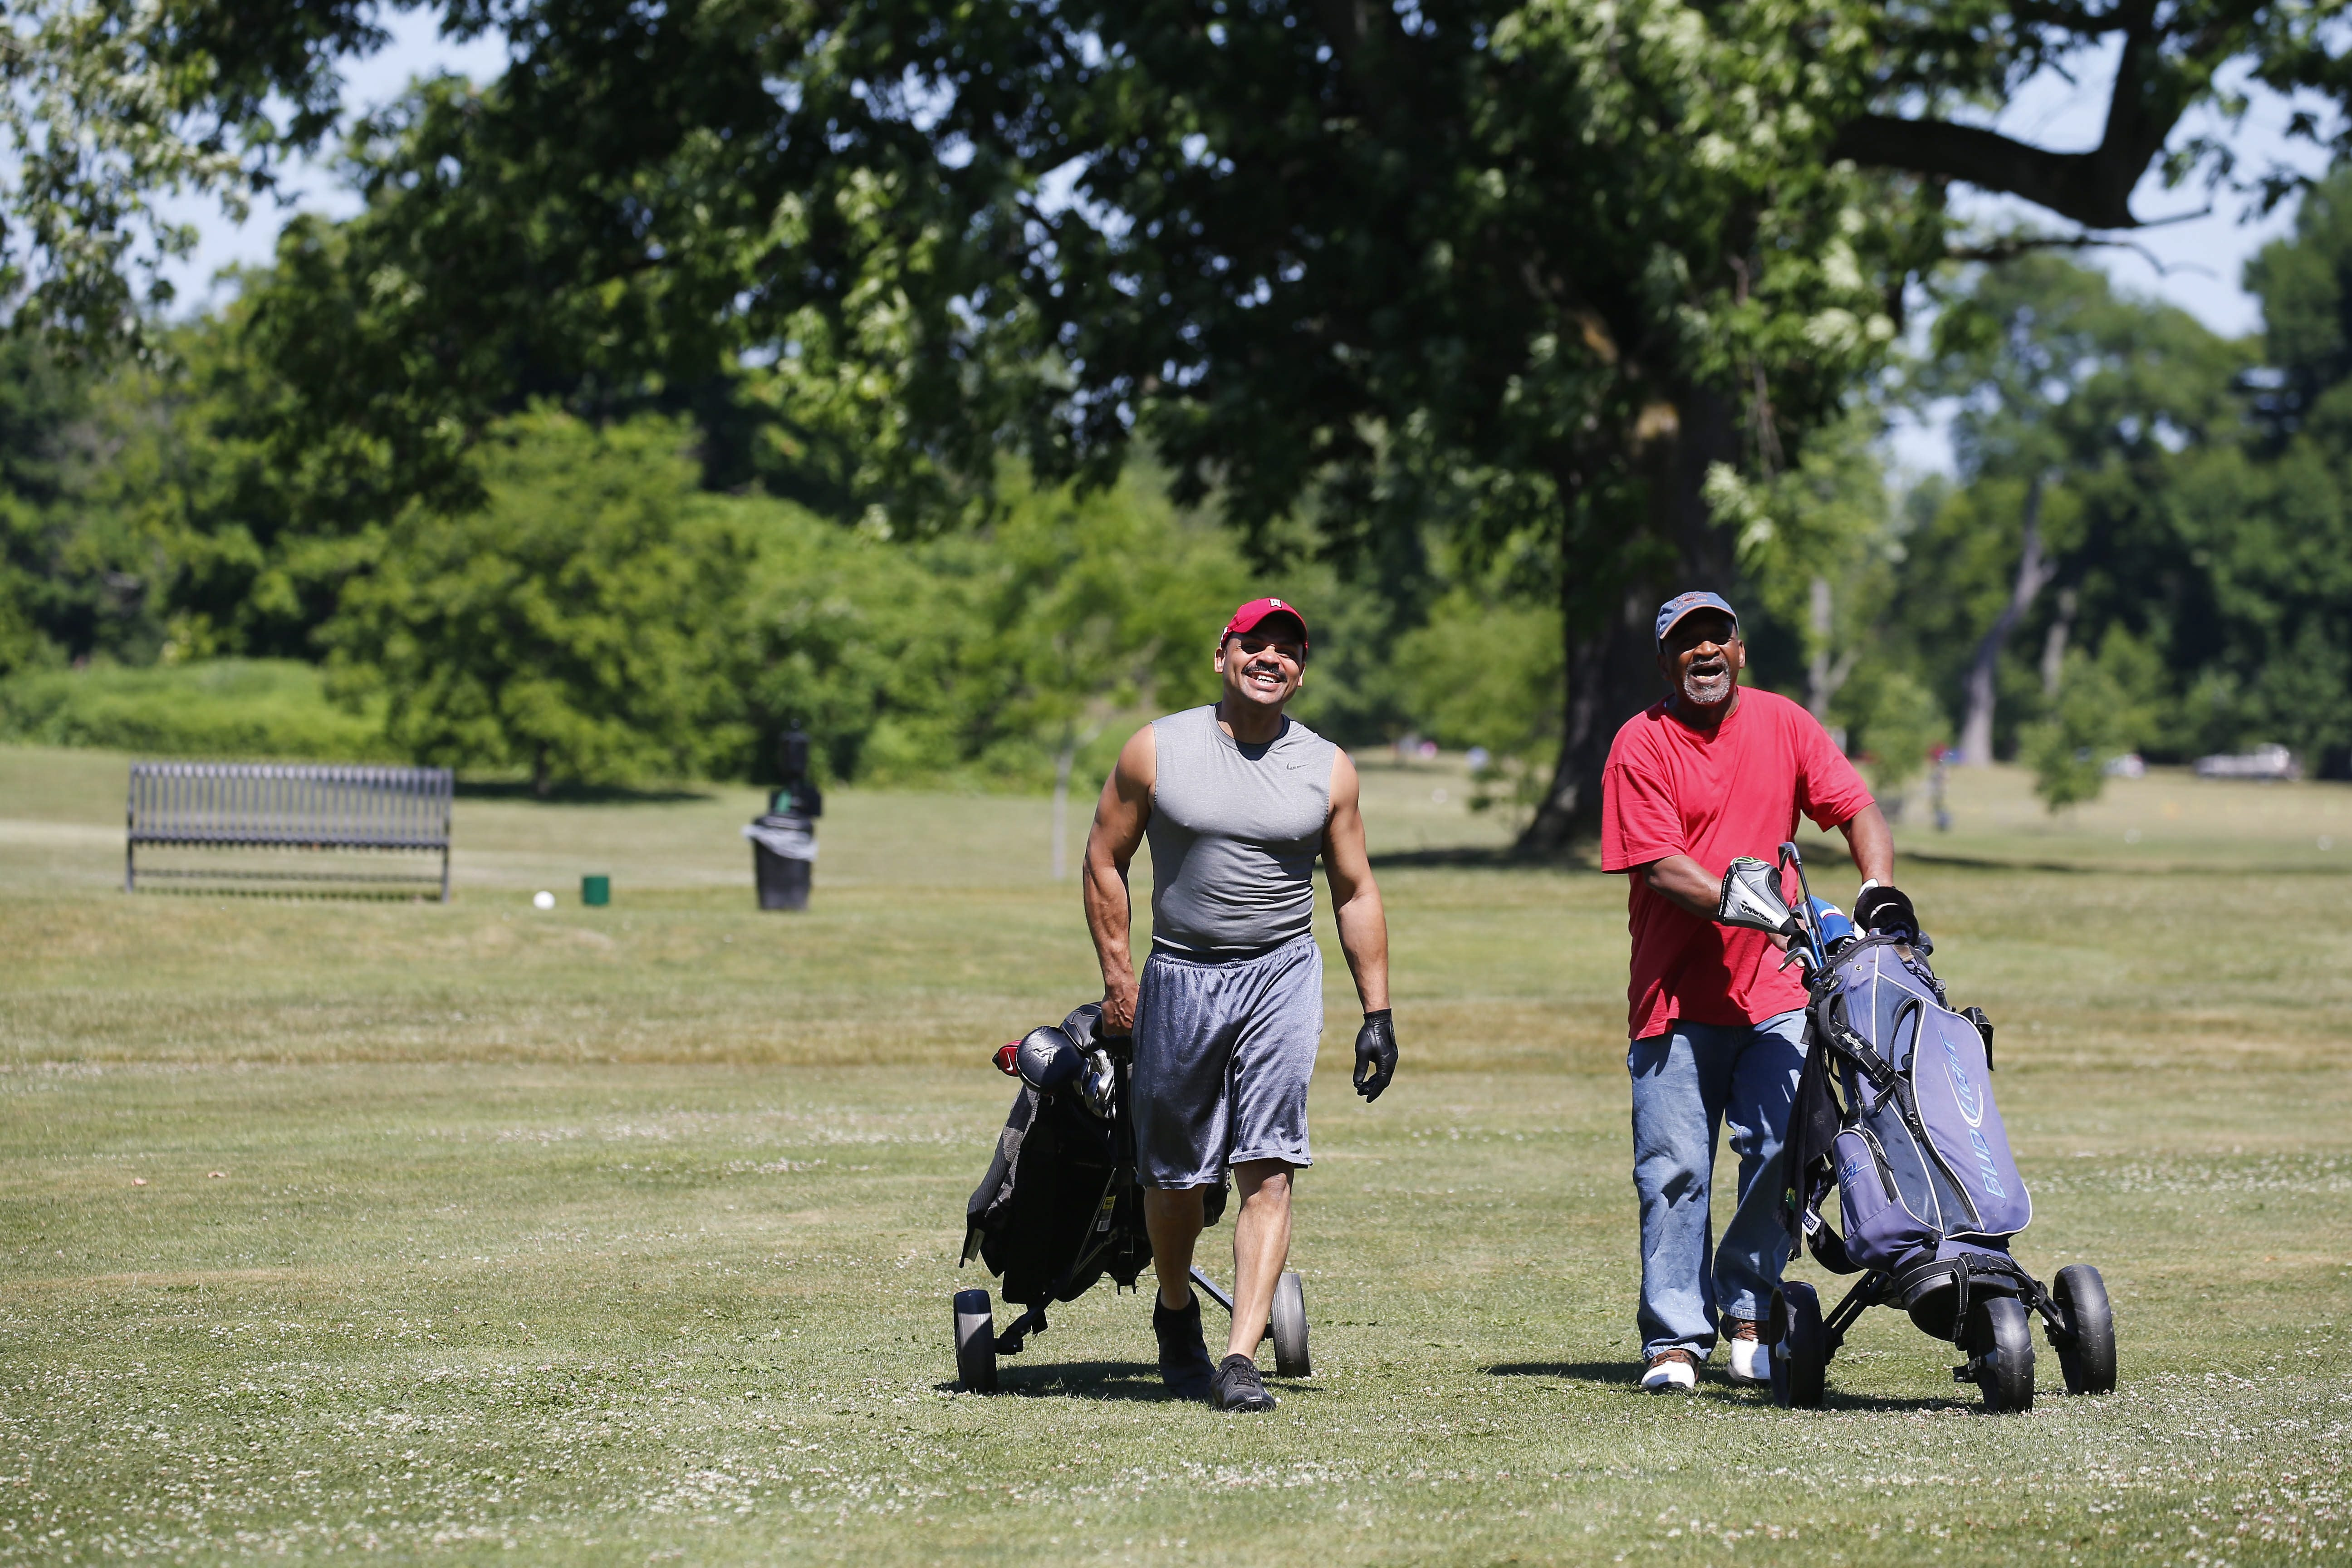 Ramon Suarez, left, and Bob Grice walk to their tee shots at the Delaware Park Golf course in Buffalo.